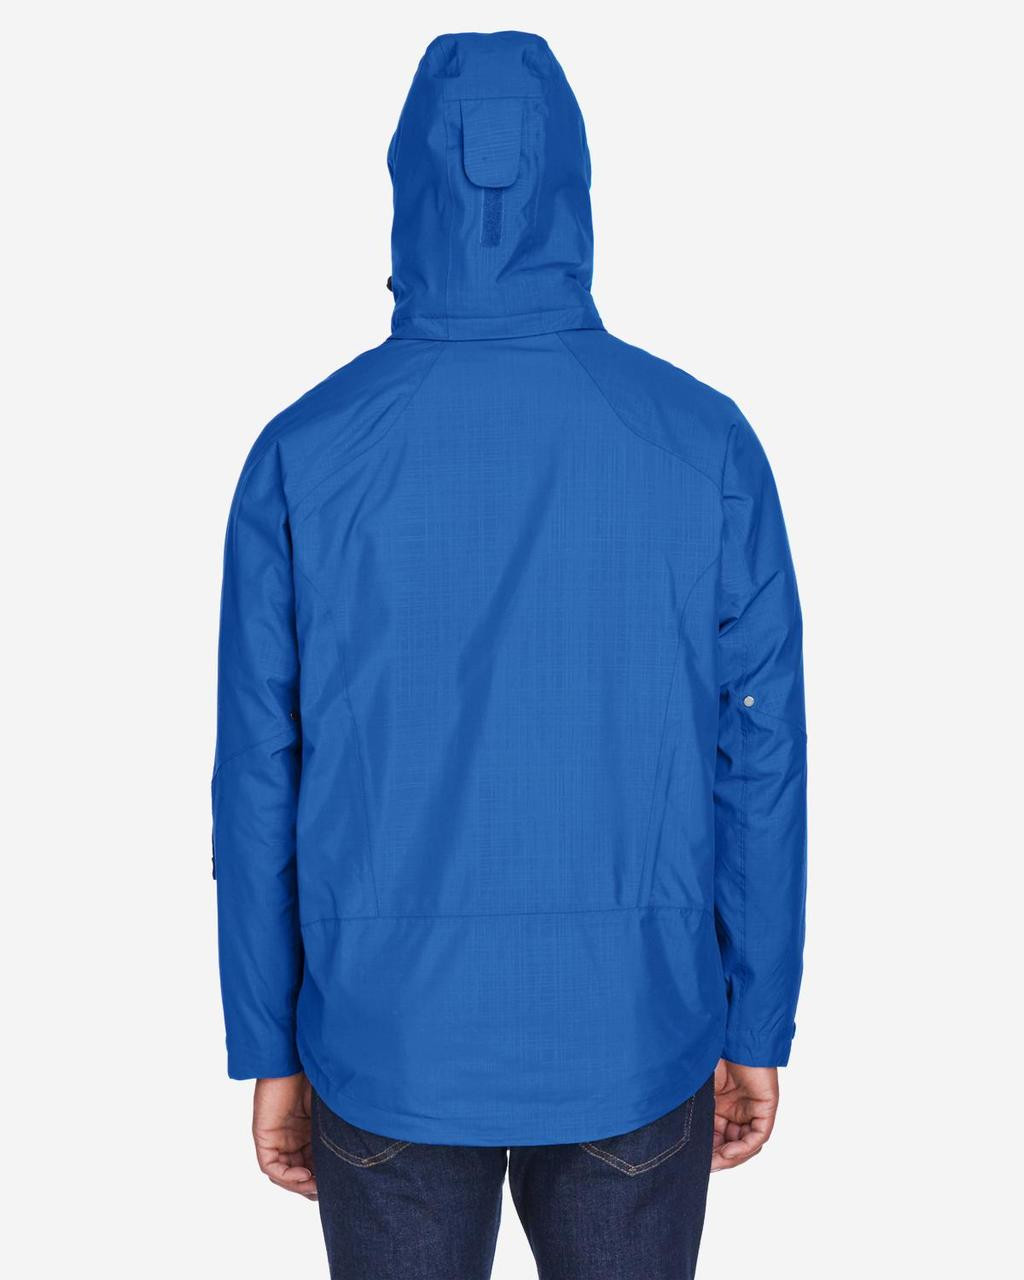 Nautical Blue - Back, 88178 North End Caprice 3-in-1 Jacket with Soft Shell Liner | BlankClothing.ca